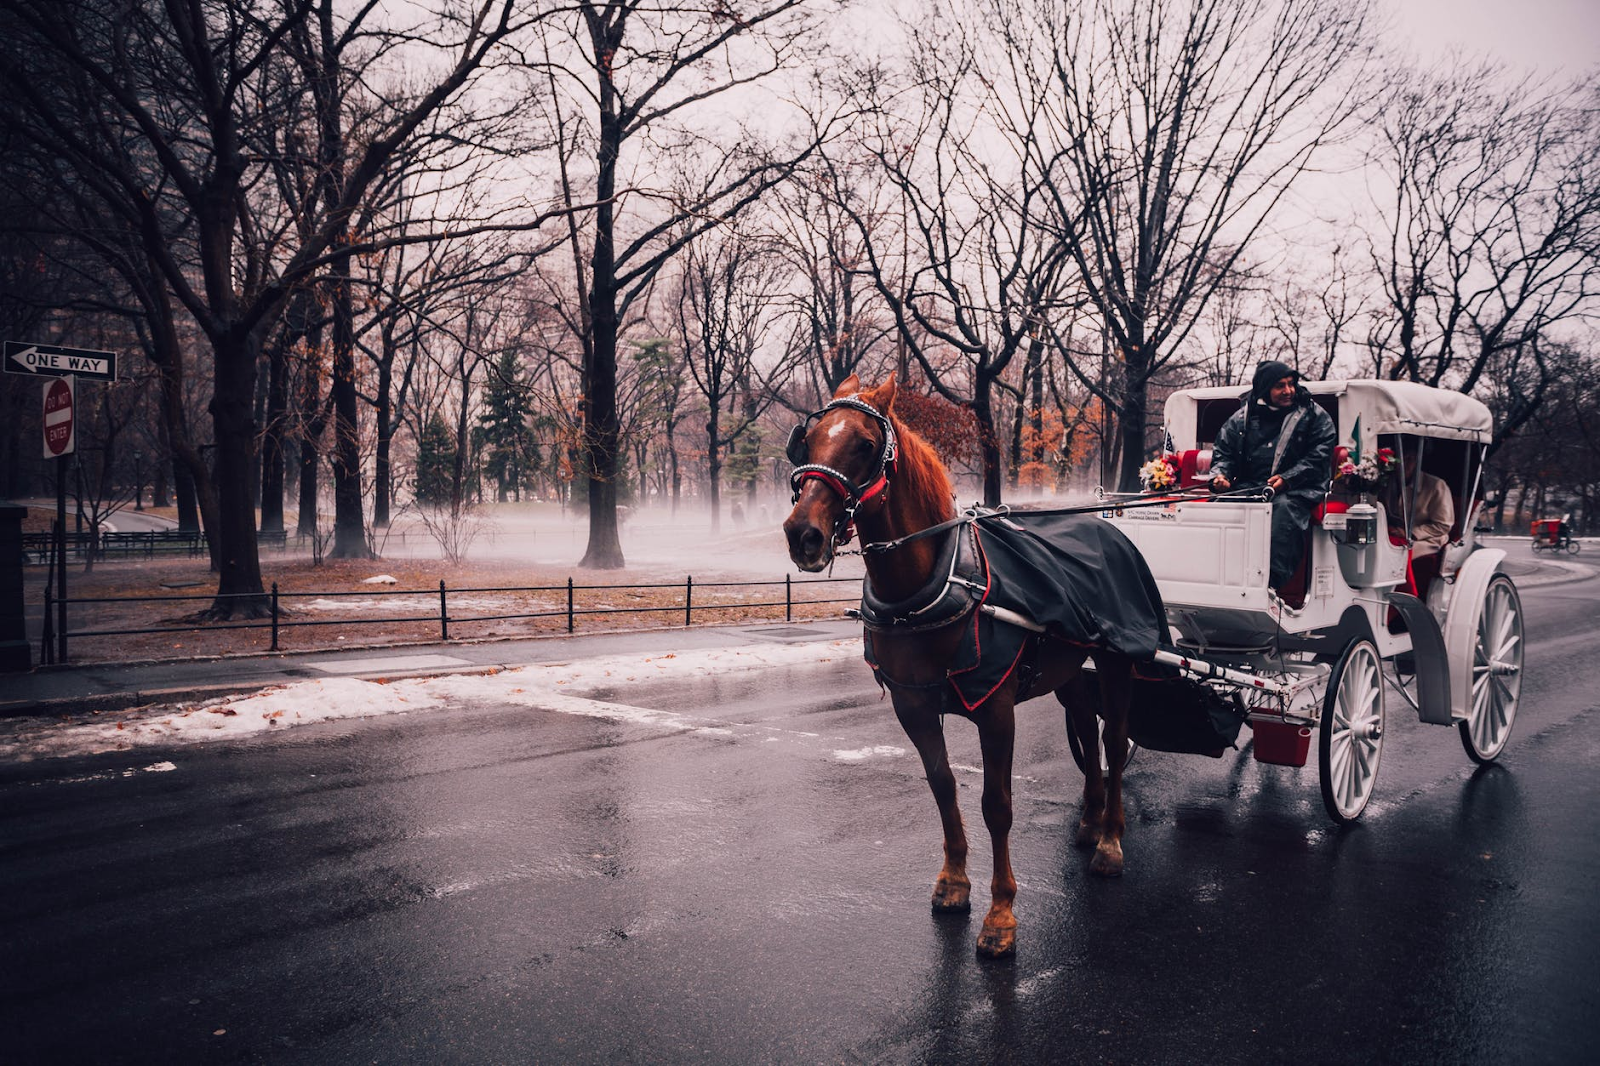 A horse pulling a white carriage in a wintery scene